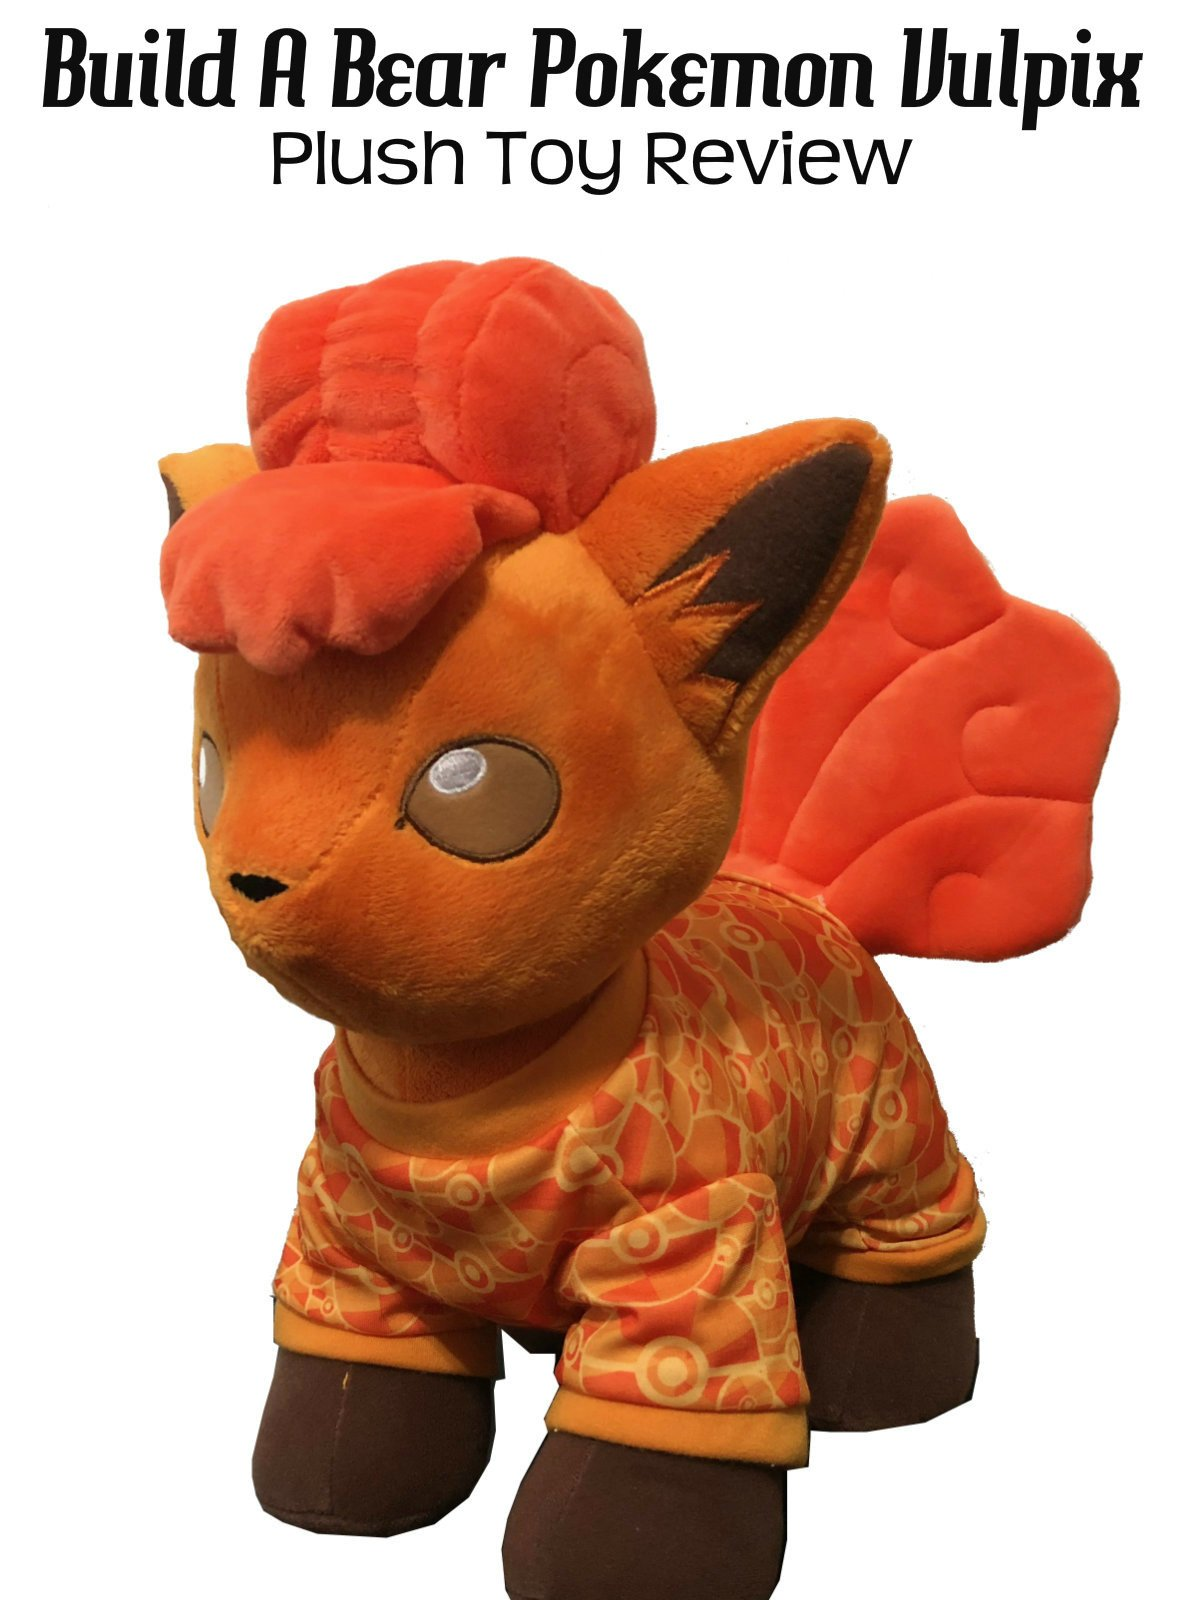 Review: Build A Bear Pokemon Vulpix Plush Toy Review